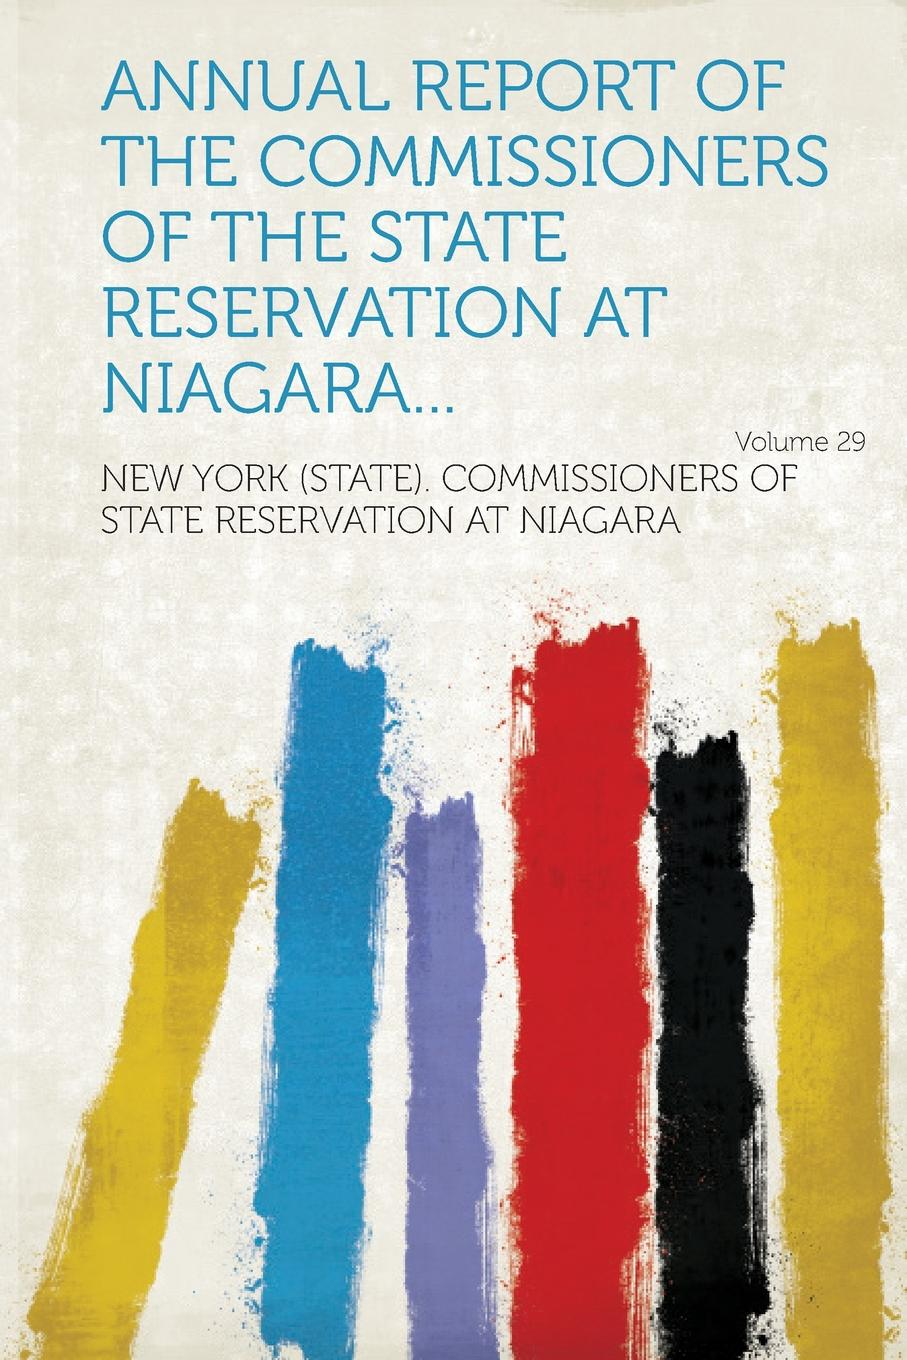 Annual report of the Commissioners of the State Reservation at Niagara... Volume 29